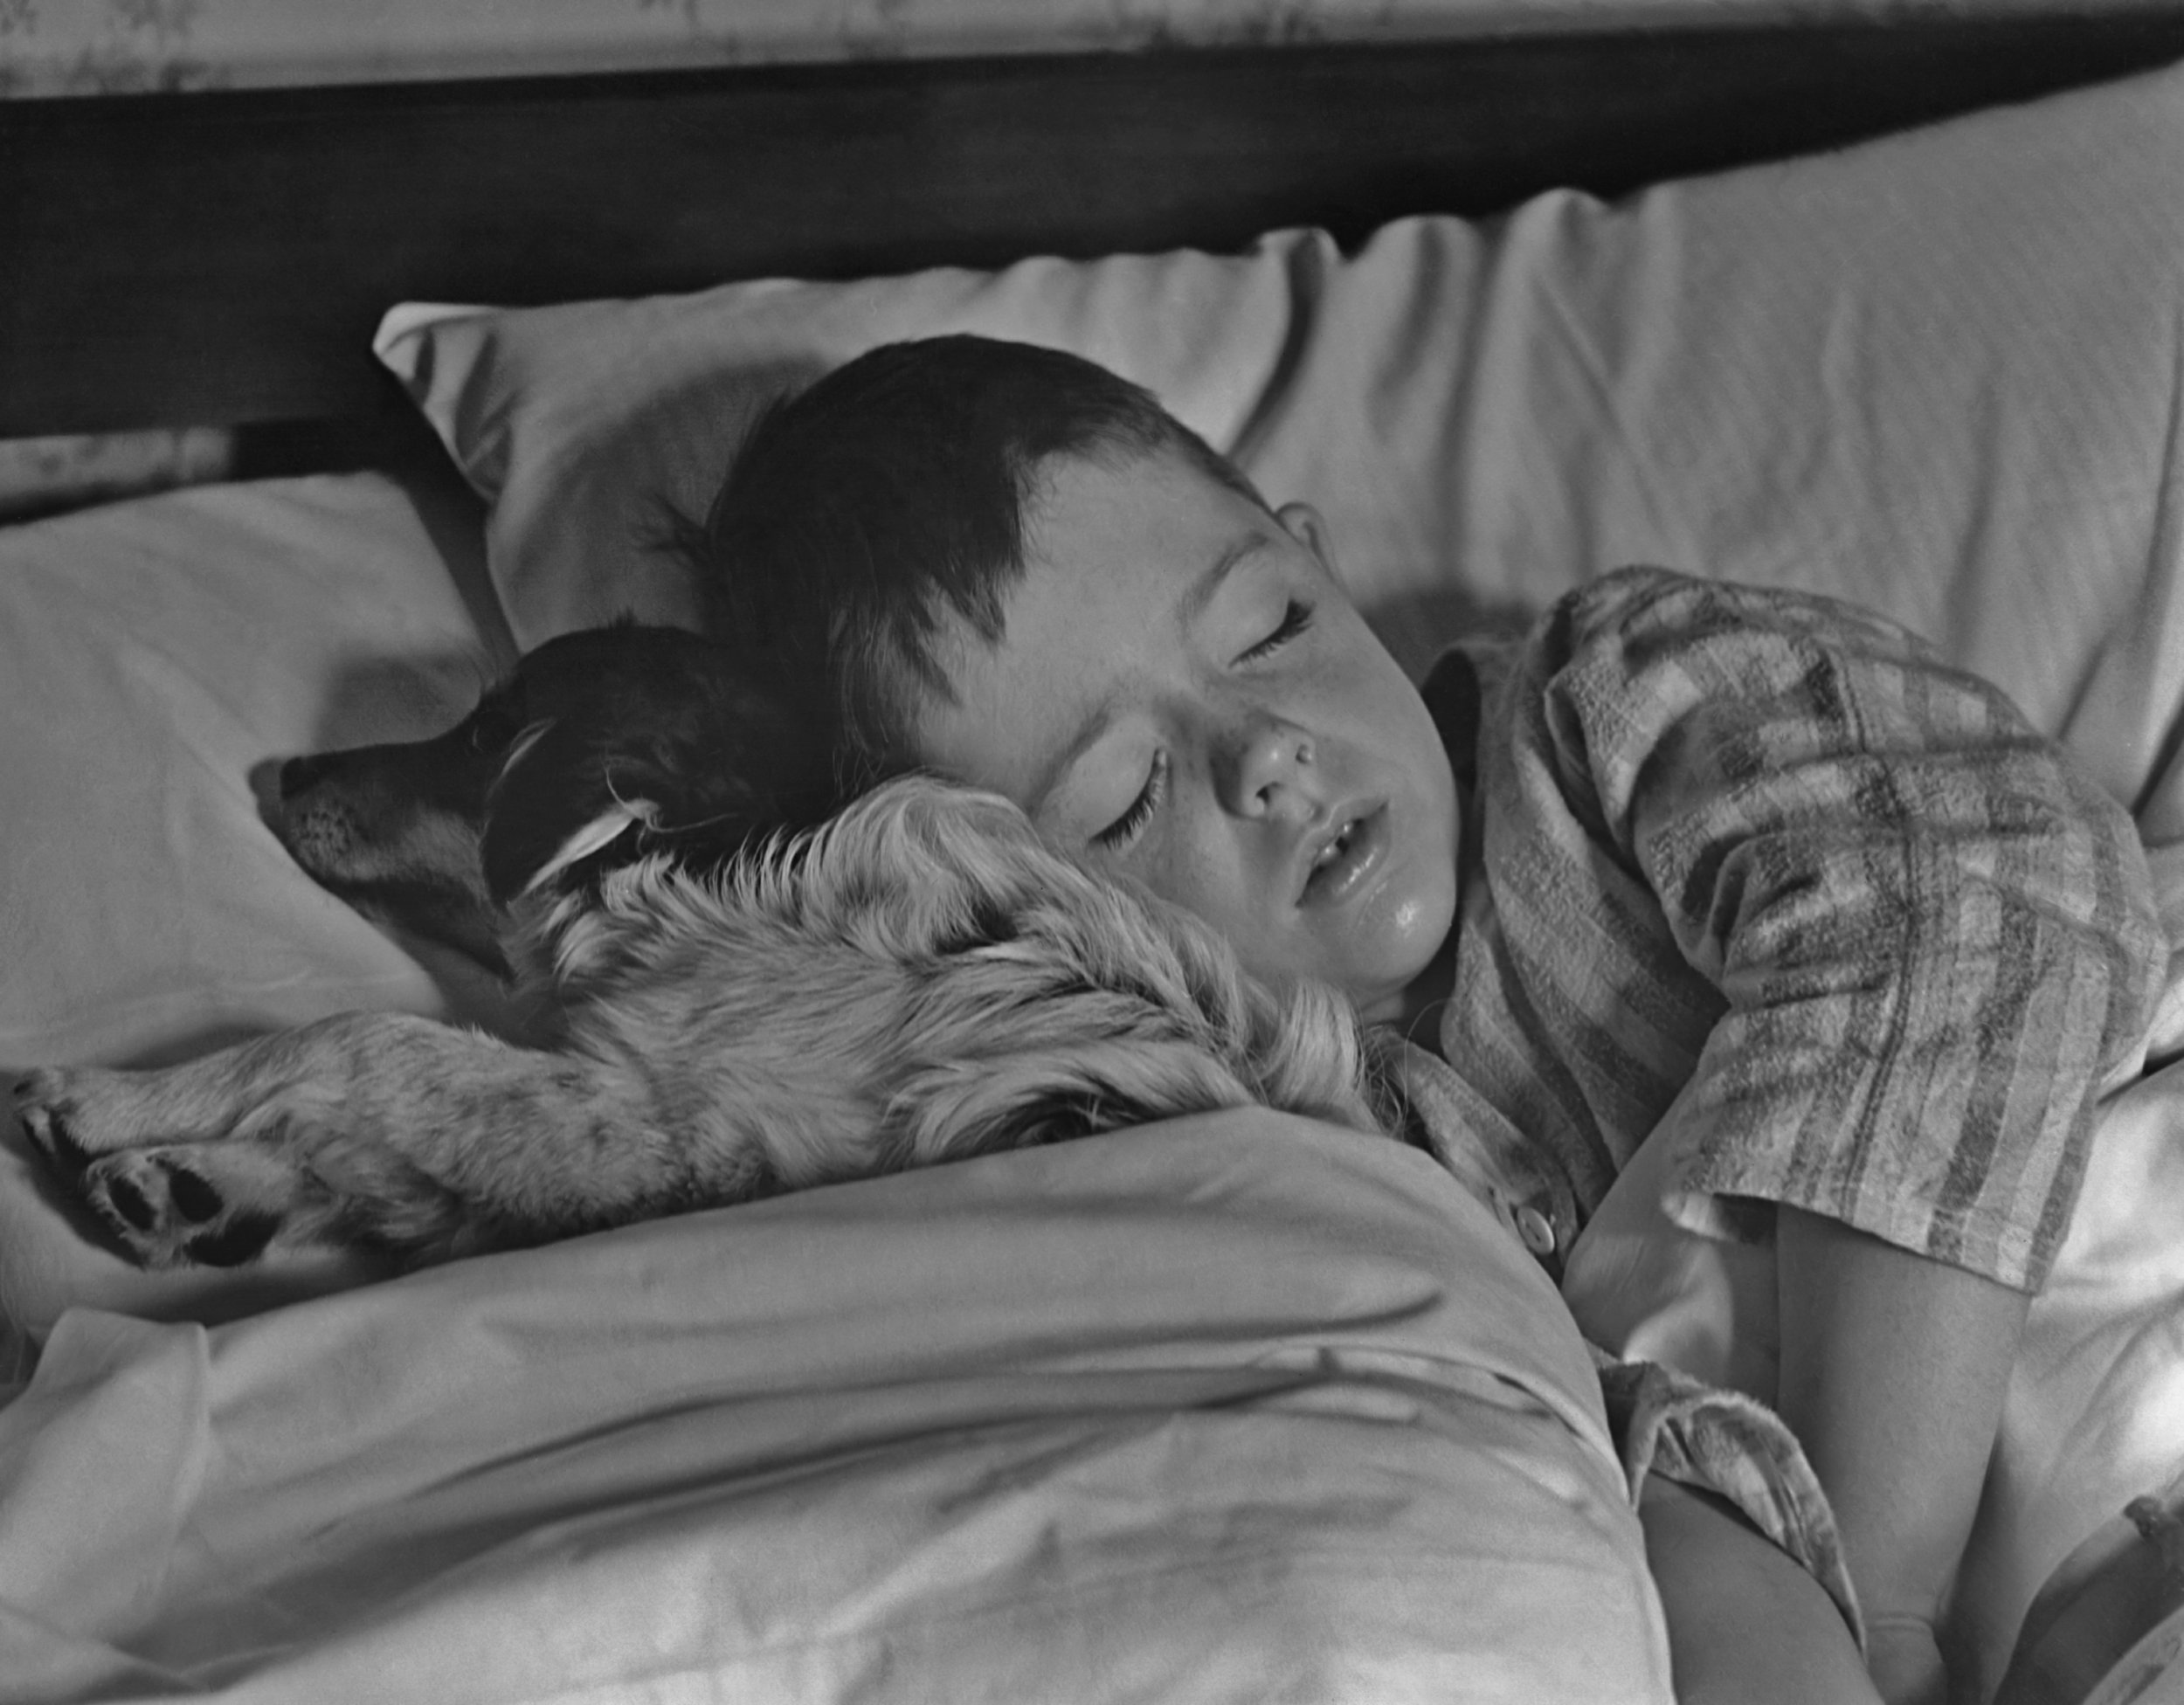 Boy asleep with dog